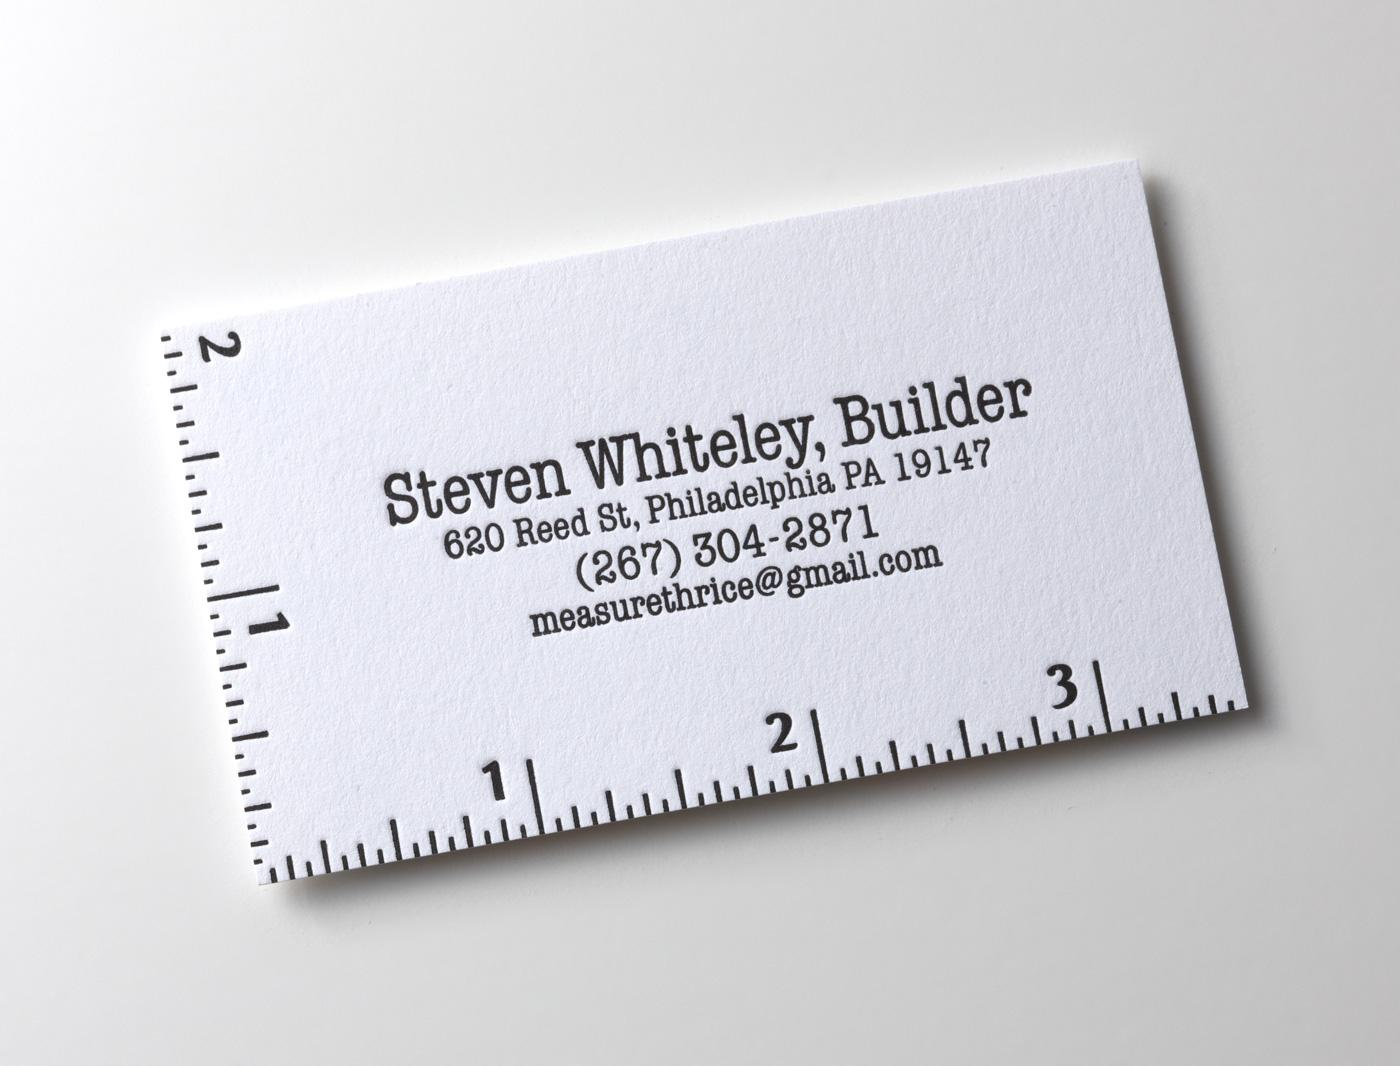 Steven Whiteley Direct Ad -  Business card